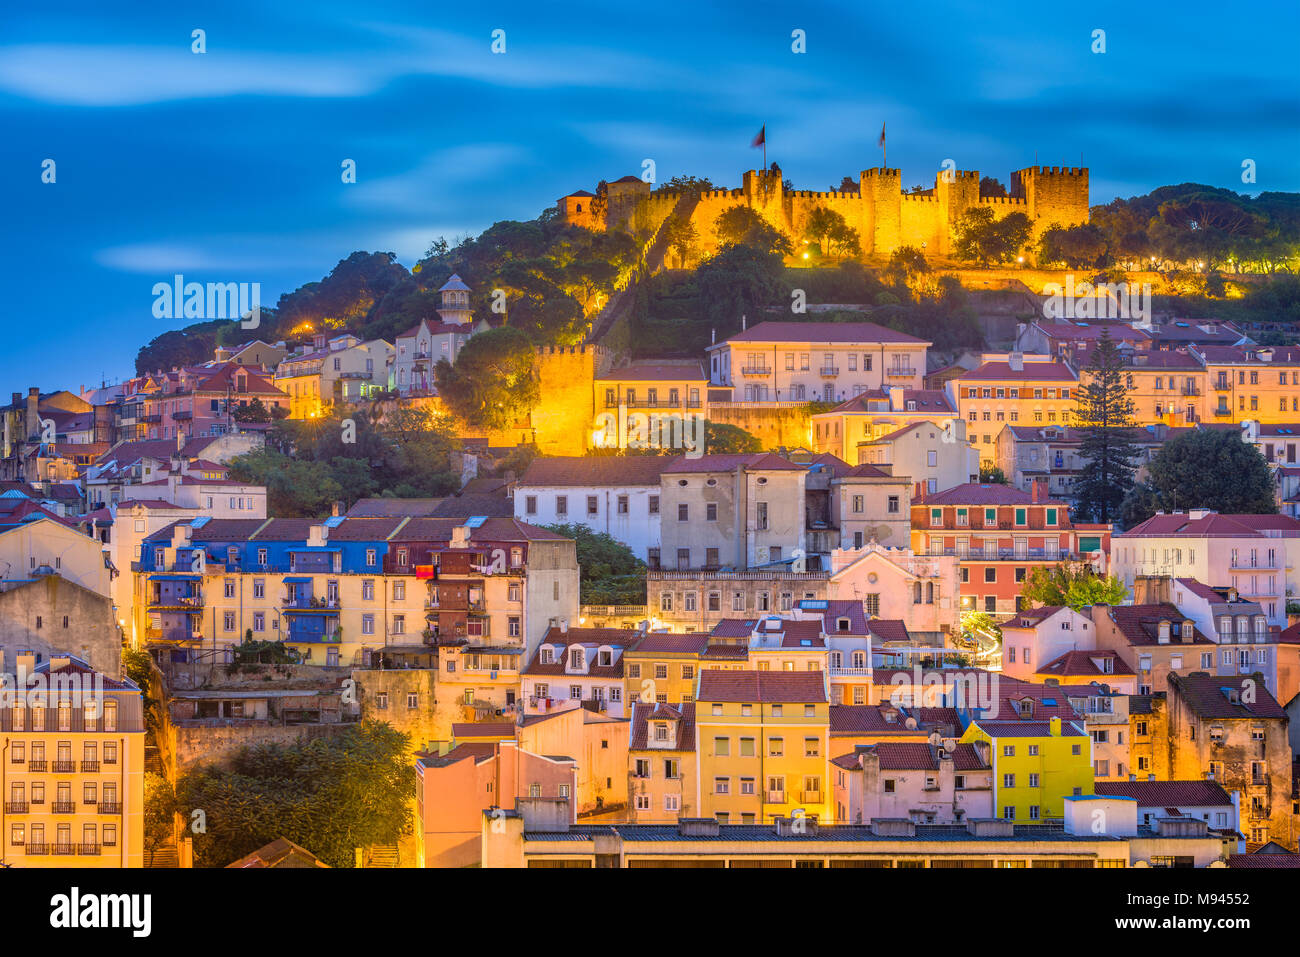 Lisbon, Portugal City Skyline with Sao Jorge Castle and Tagus River. - Stock Image